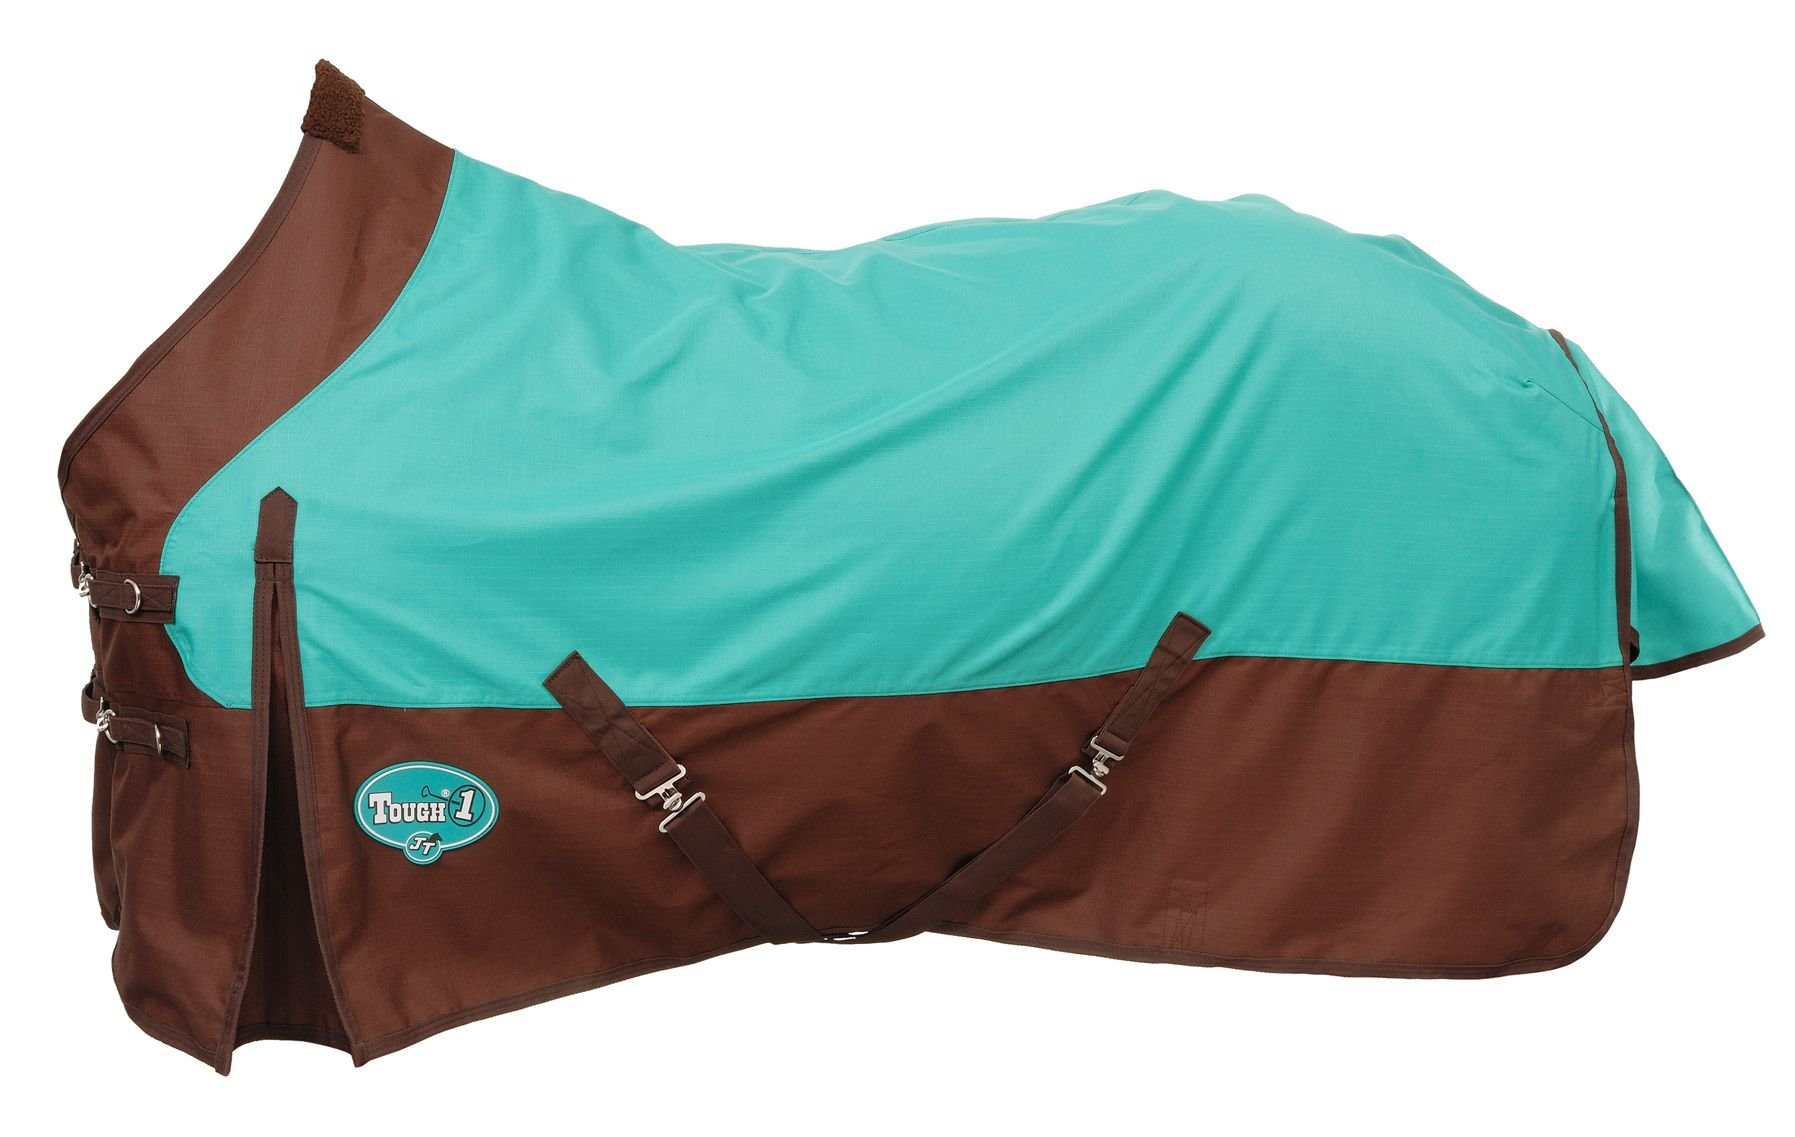 Tough 1 1200 Denier Water Repellent Horse Sheet, Turquoise/Brown, 72-Inch by Tough 1 (Image #1)